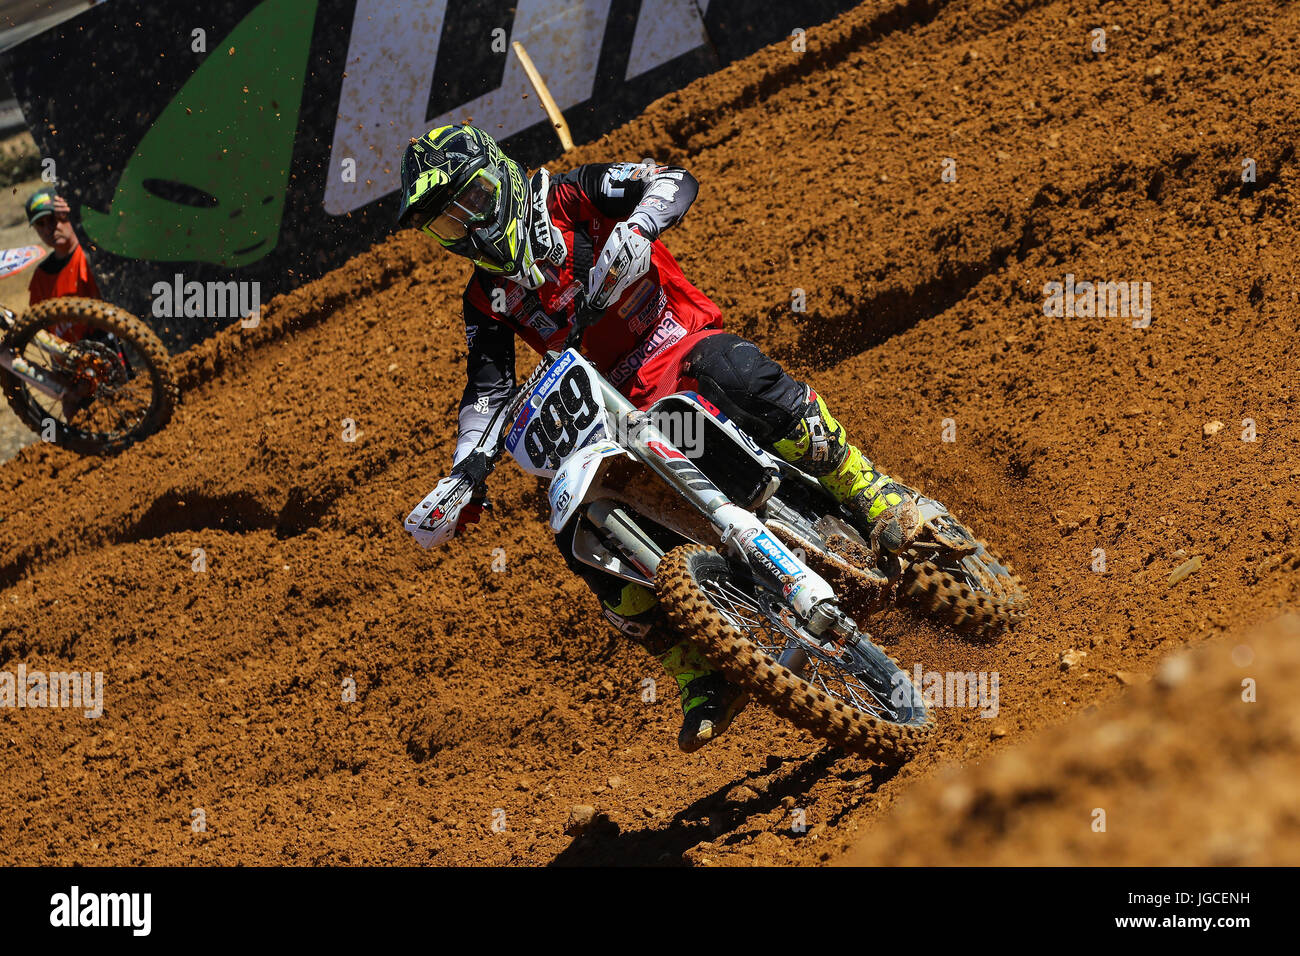 Rui Goncalves #999 (POR) in Husqvarna of 8Biano Racing Husqvarna in action during the Warm-up MXGP World Championship - Stock Image